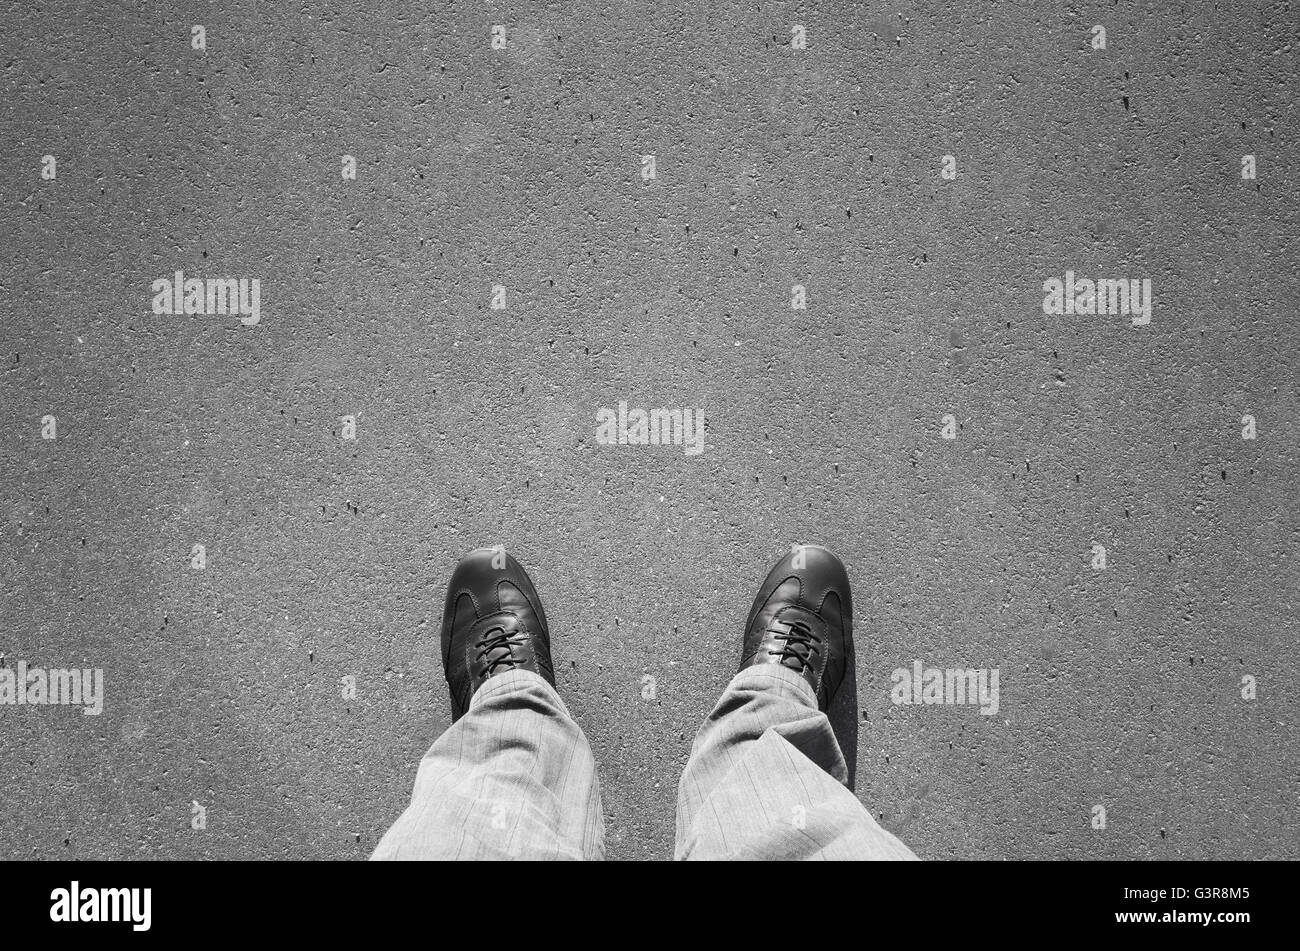 Male feet in black new shining leather shoes standing on urban asphalt pavement - Stock Image